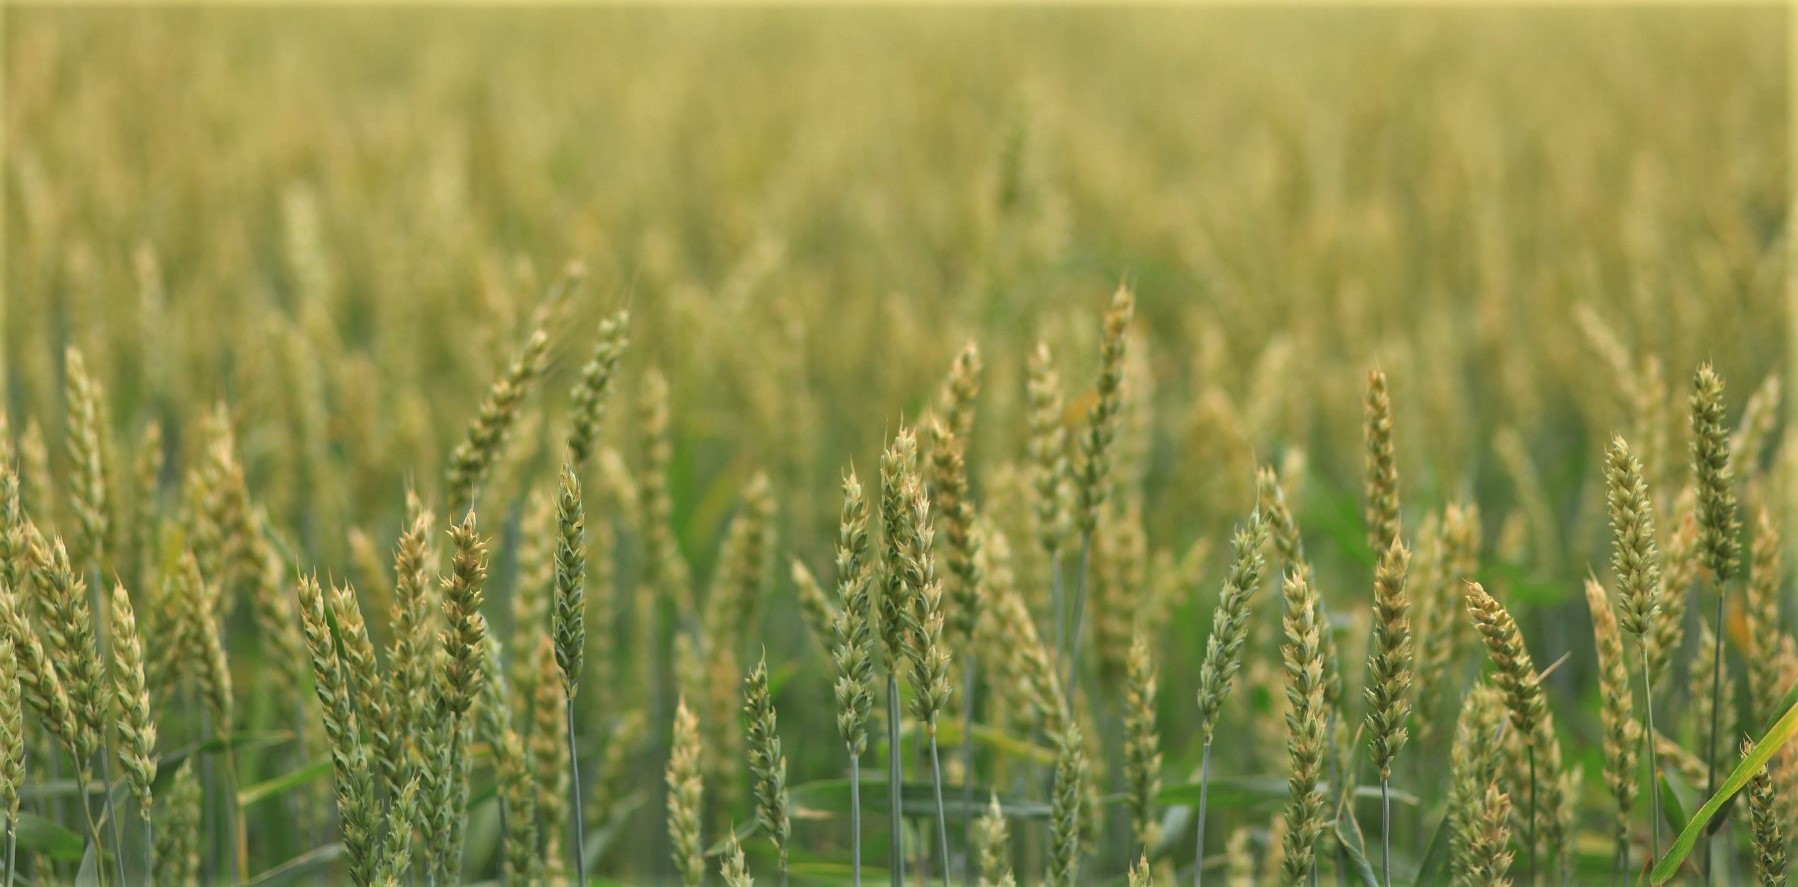 Stakeholders say Global Burden of Crop Loss would help direct future agricultural policy and practice